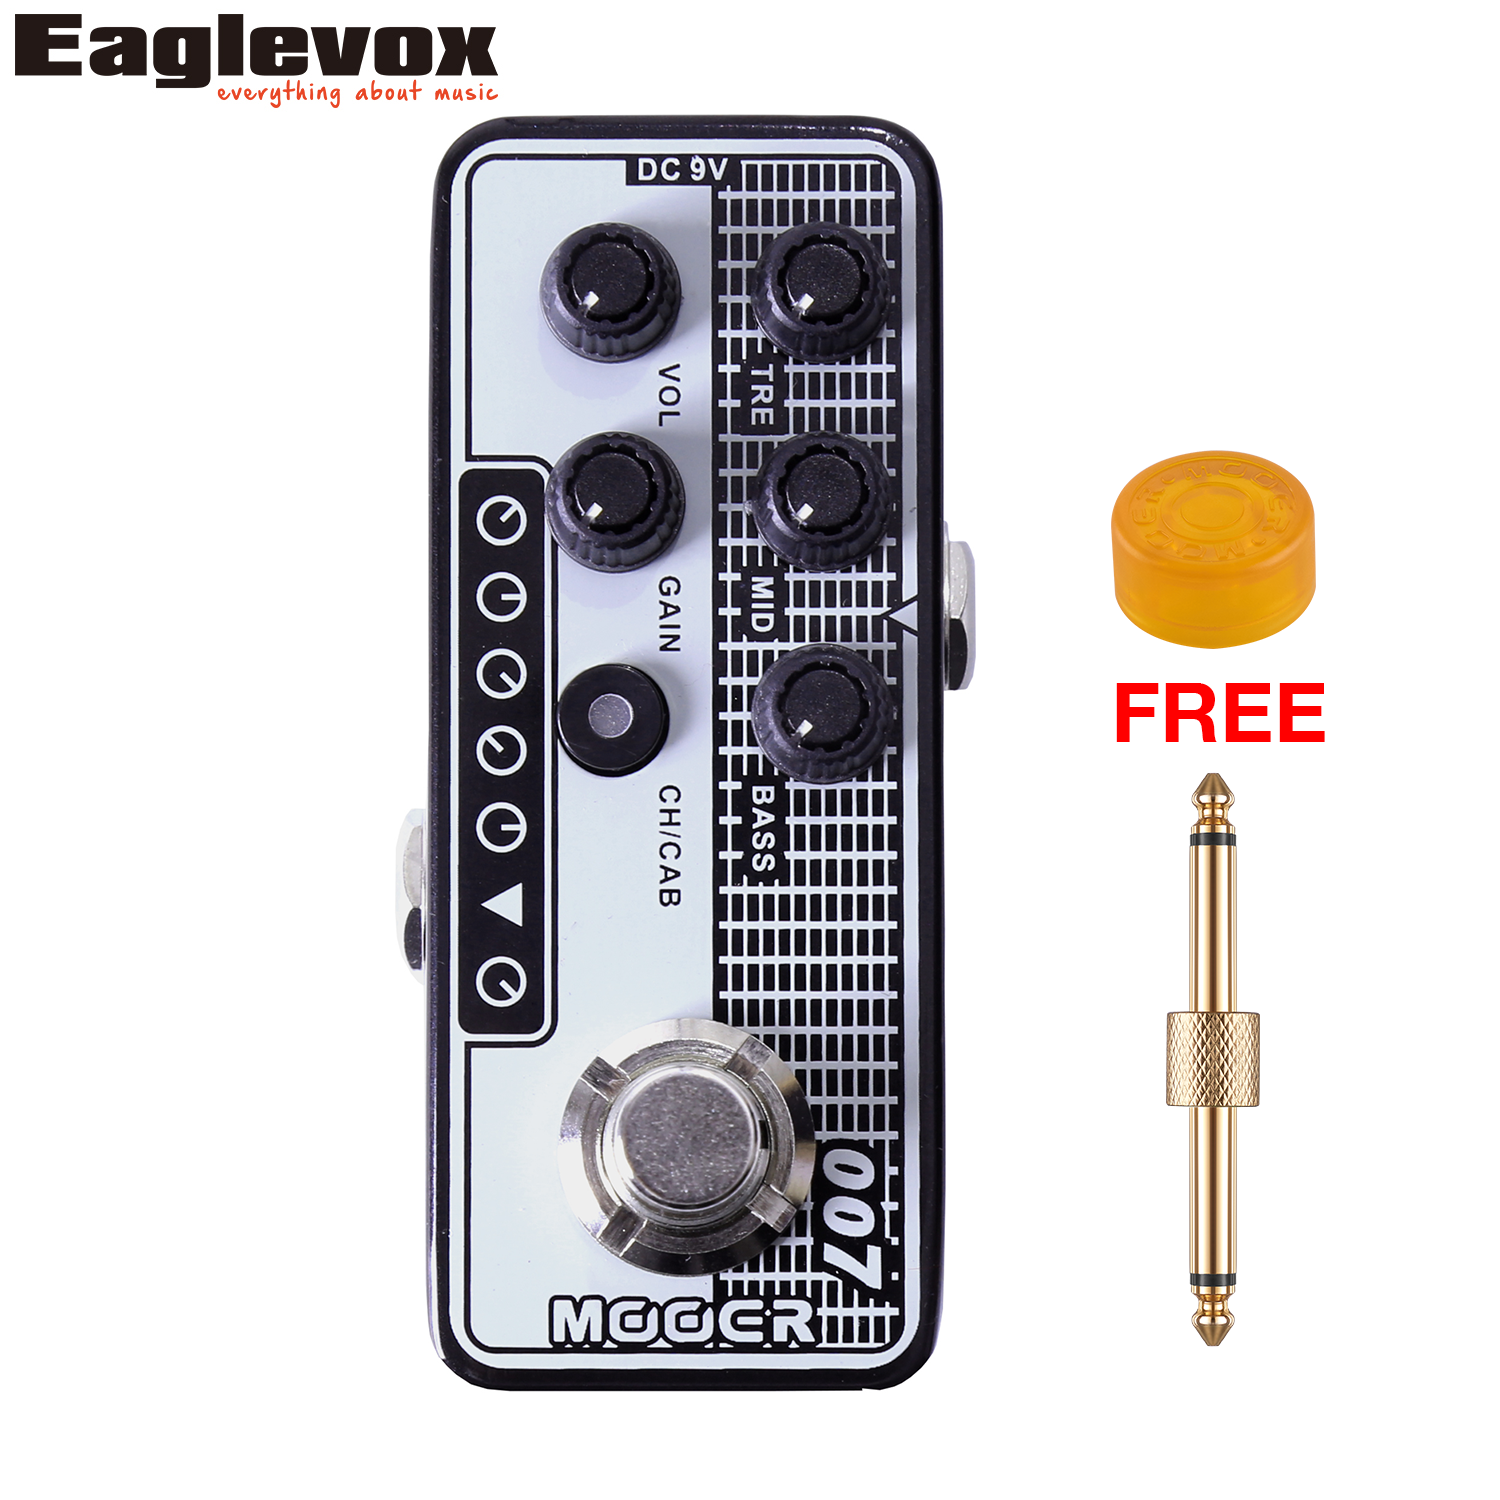 Mooer 007 Regal Tone Micro Preamp 3 band EQ Gain Volume Controls Guitar Effect Pedal with Free Gift mooer 002 uk gold 900 micro preamp dual channel 3 band eq gain volume controls guitar effect pedal with free gift